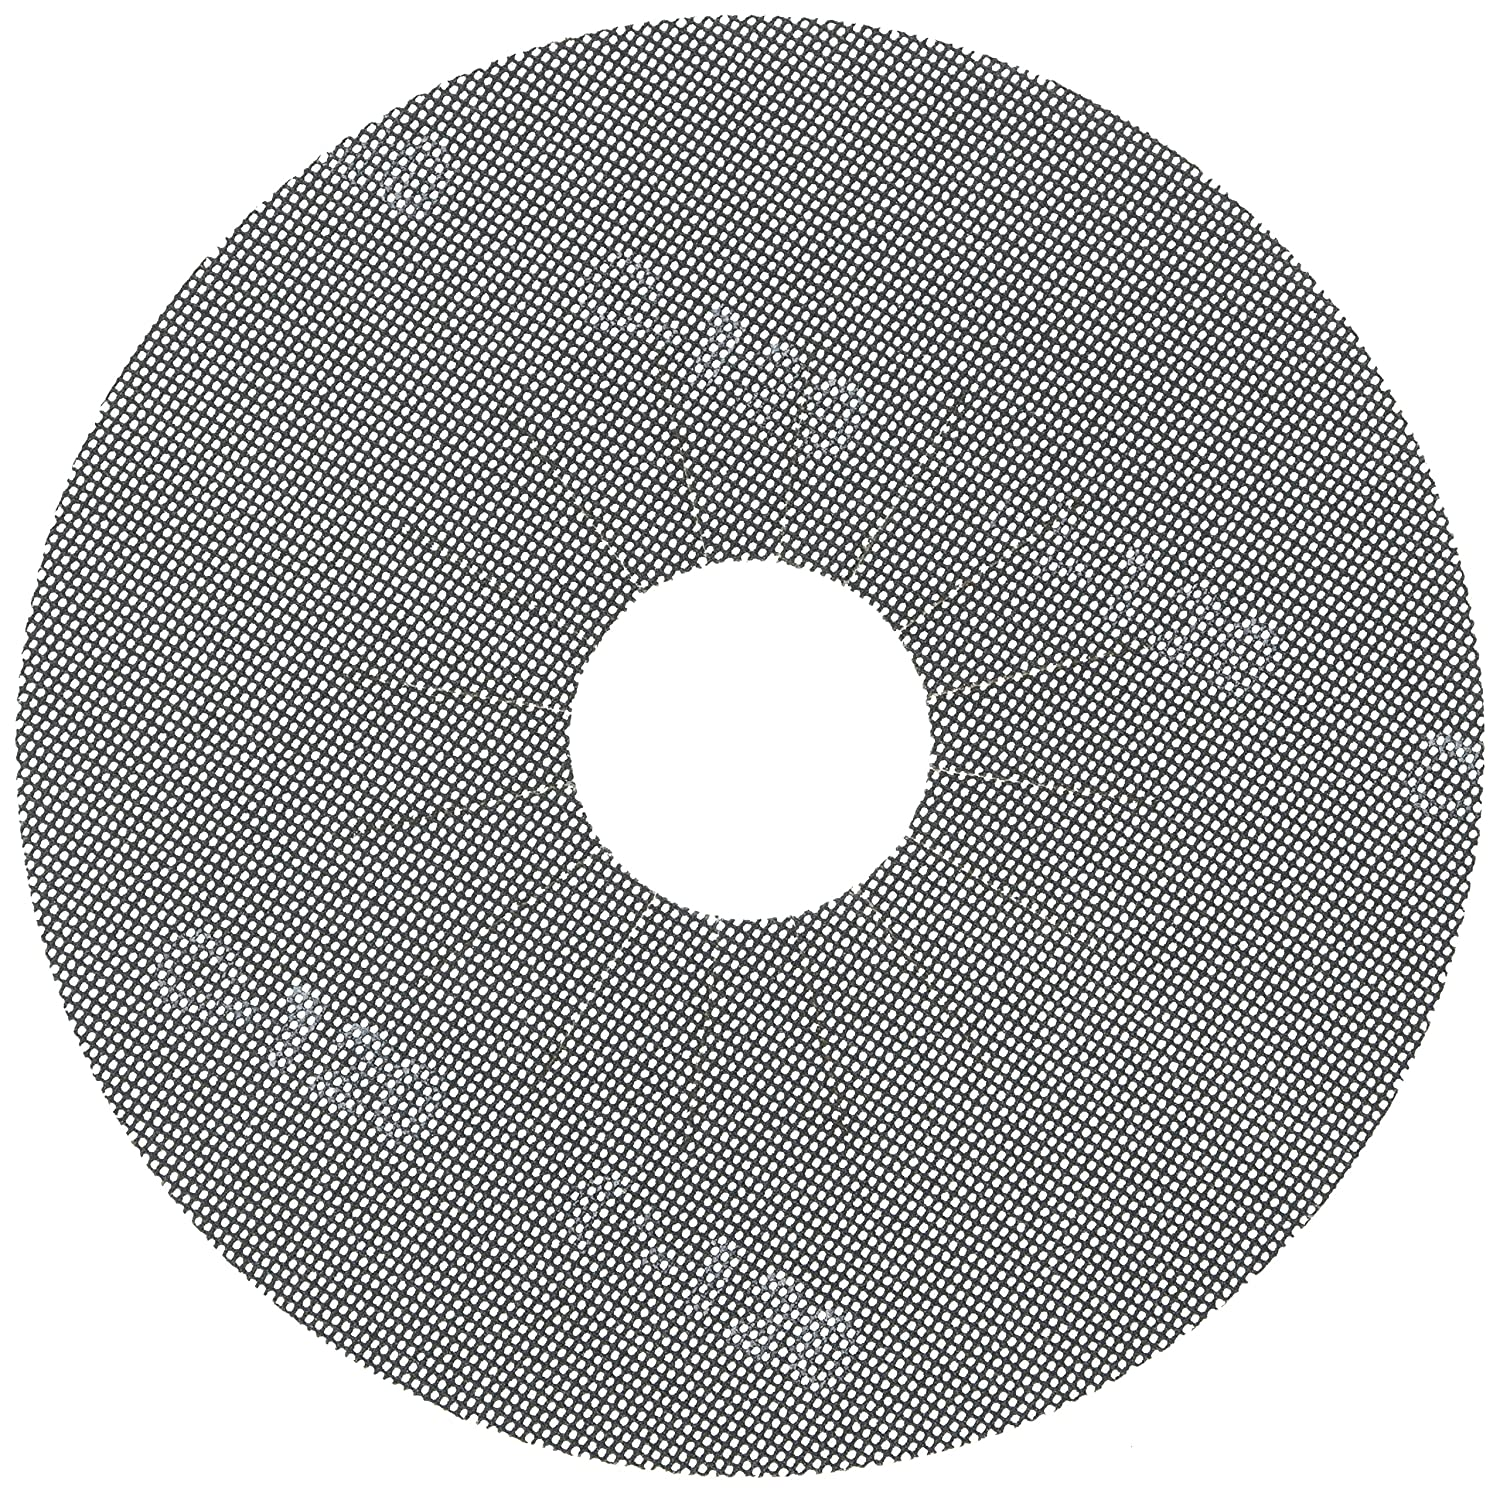 PORTER-CABLE 76120-25 9-Inch 120G Abrasive Mesh Disc (25-Pack)